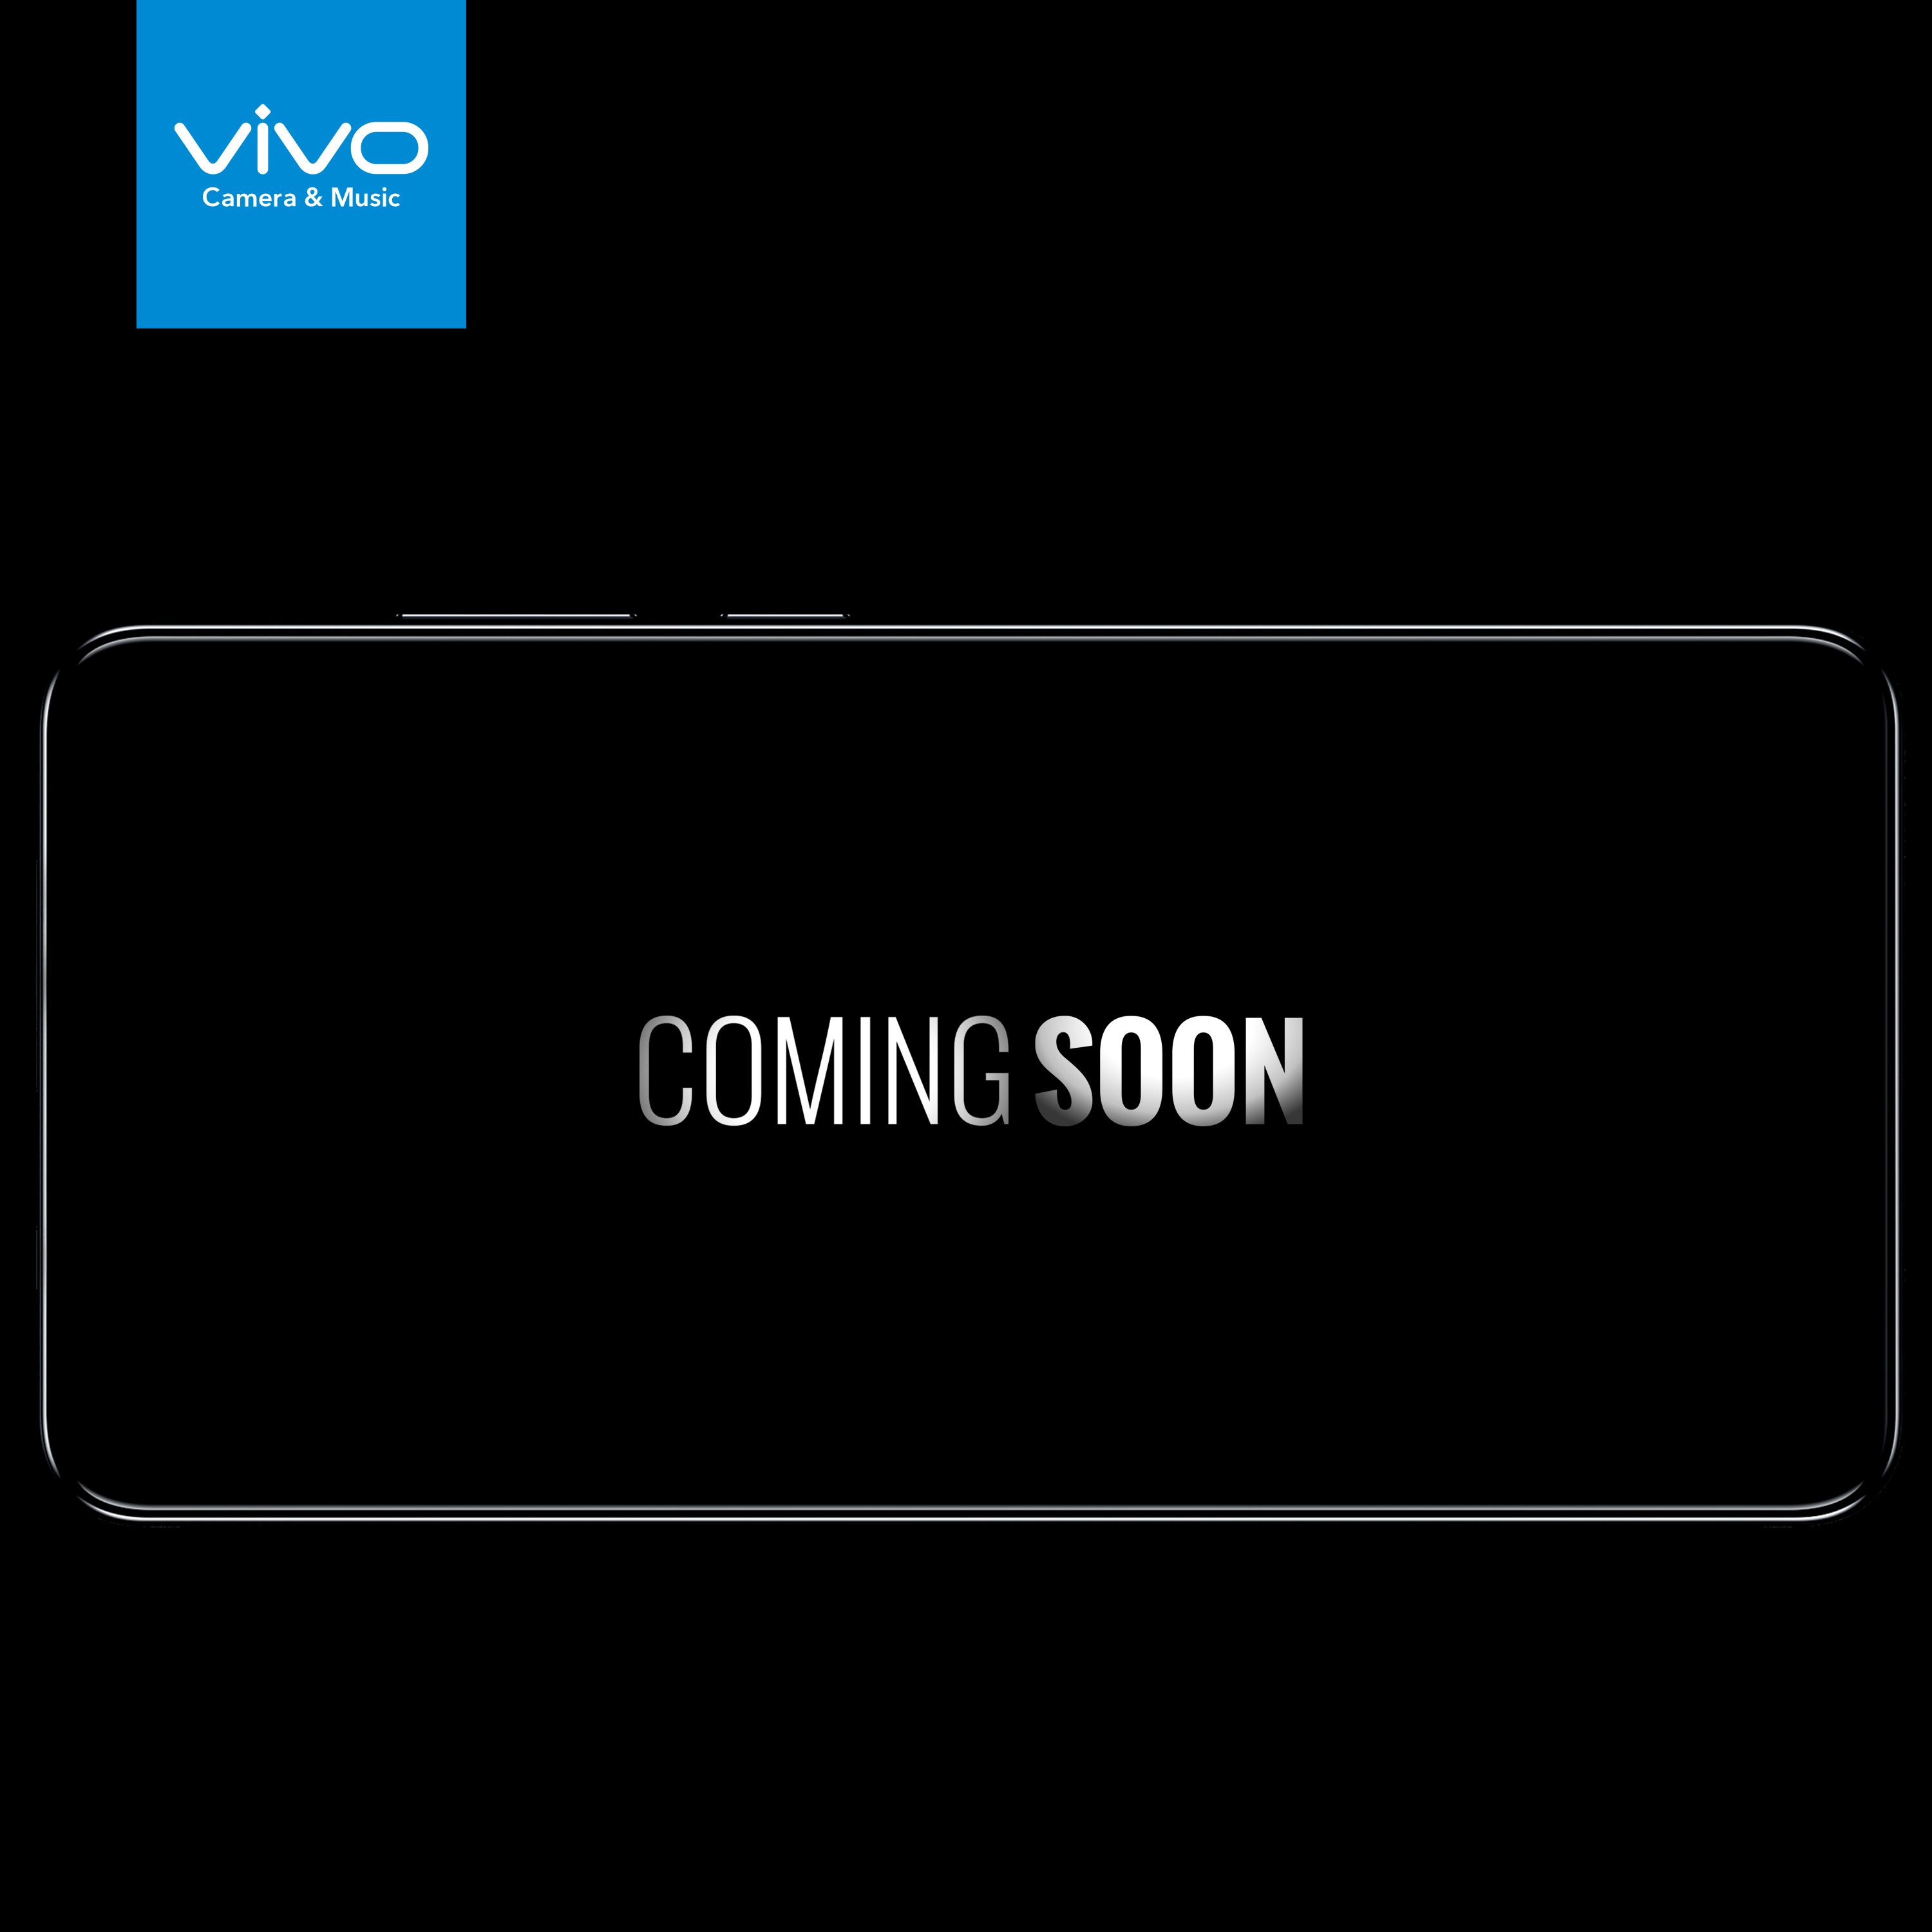 Vivo-New-Product-will-coming-Soon1.jpg